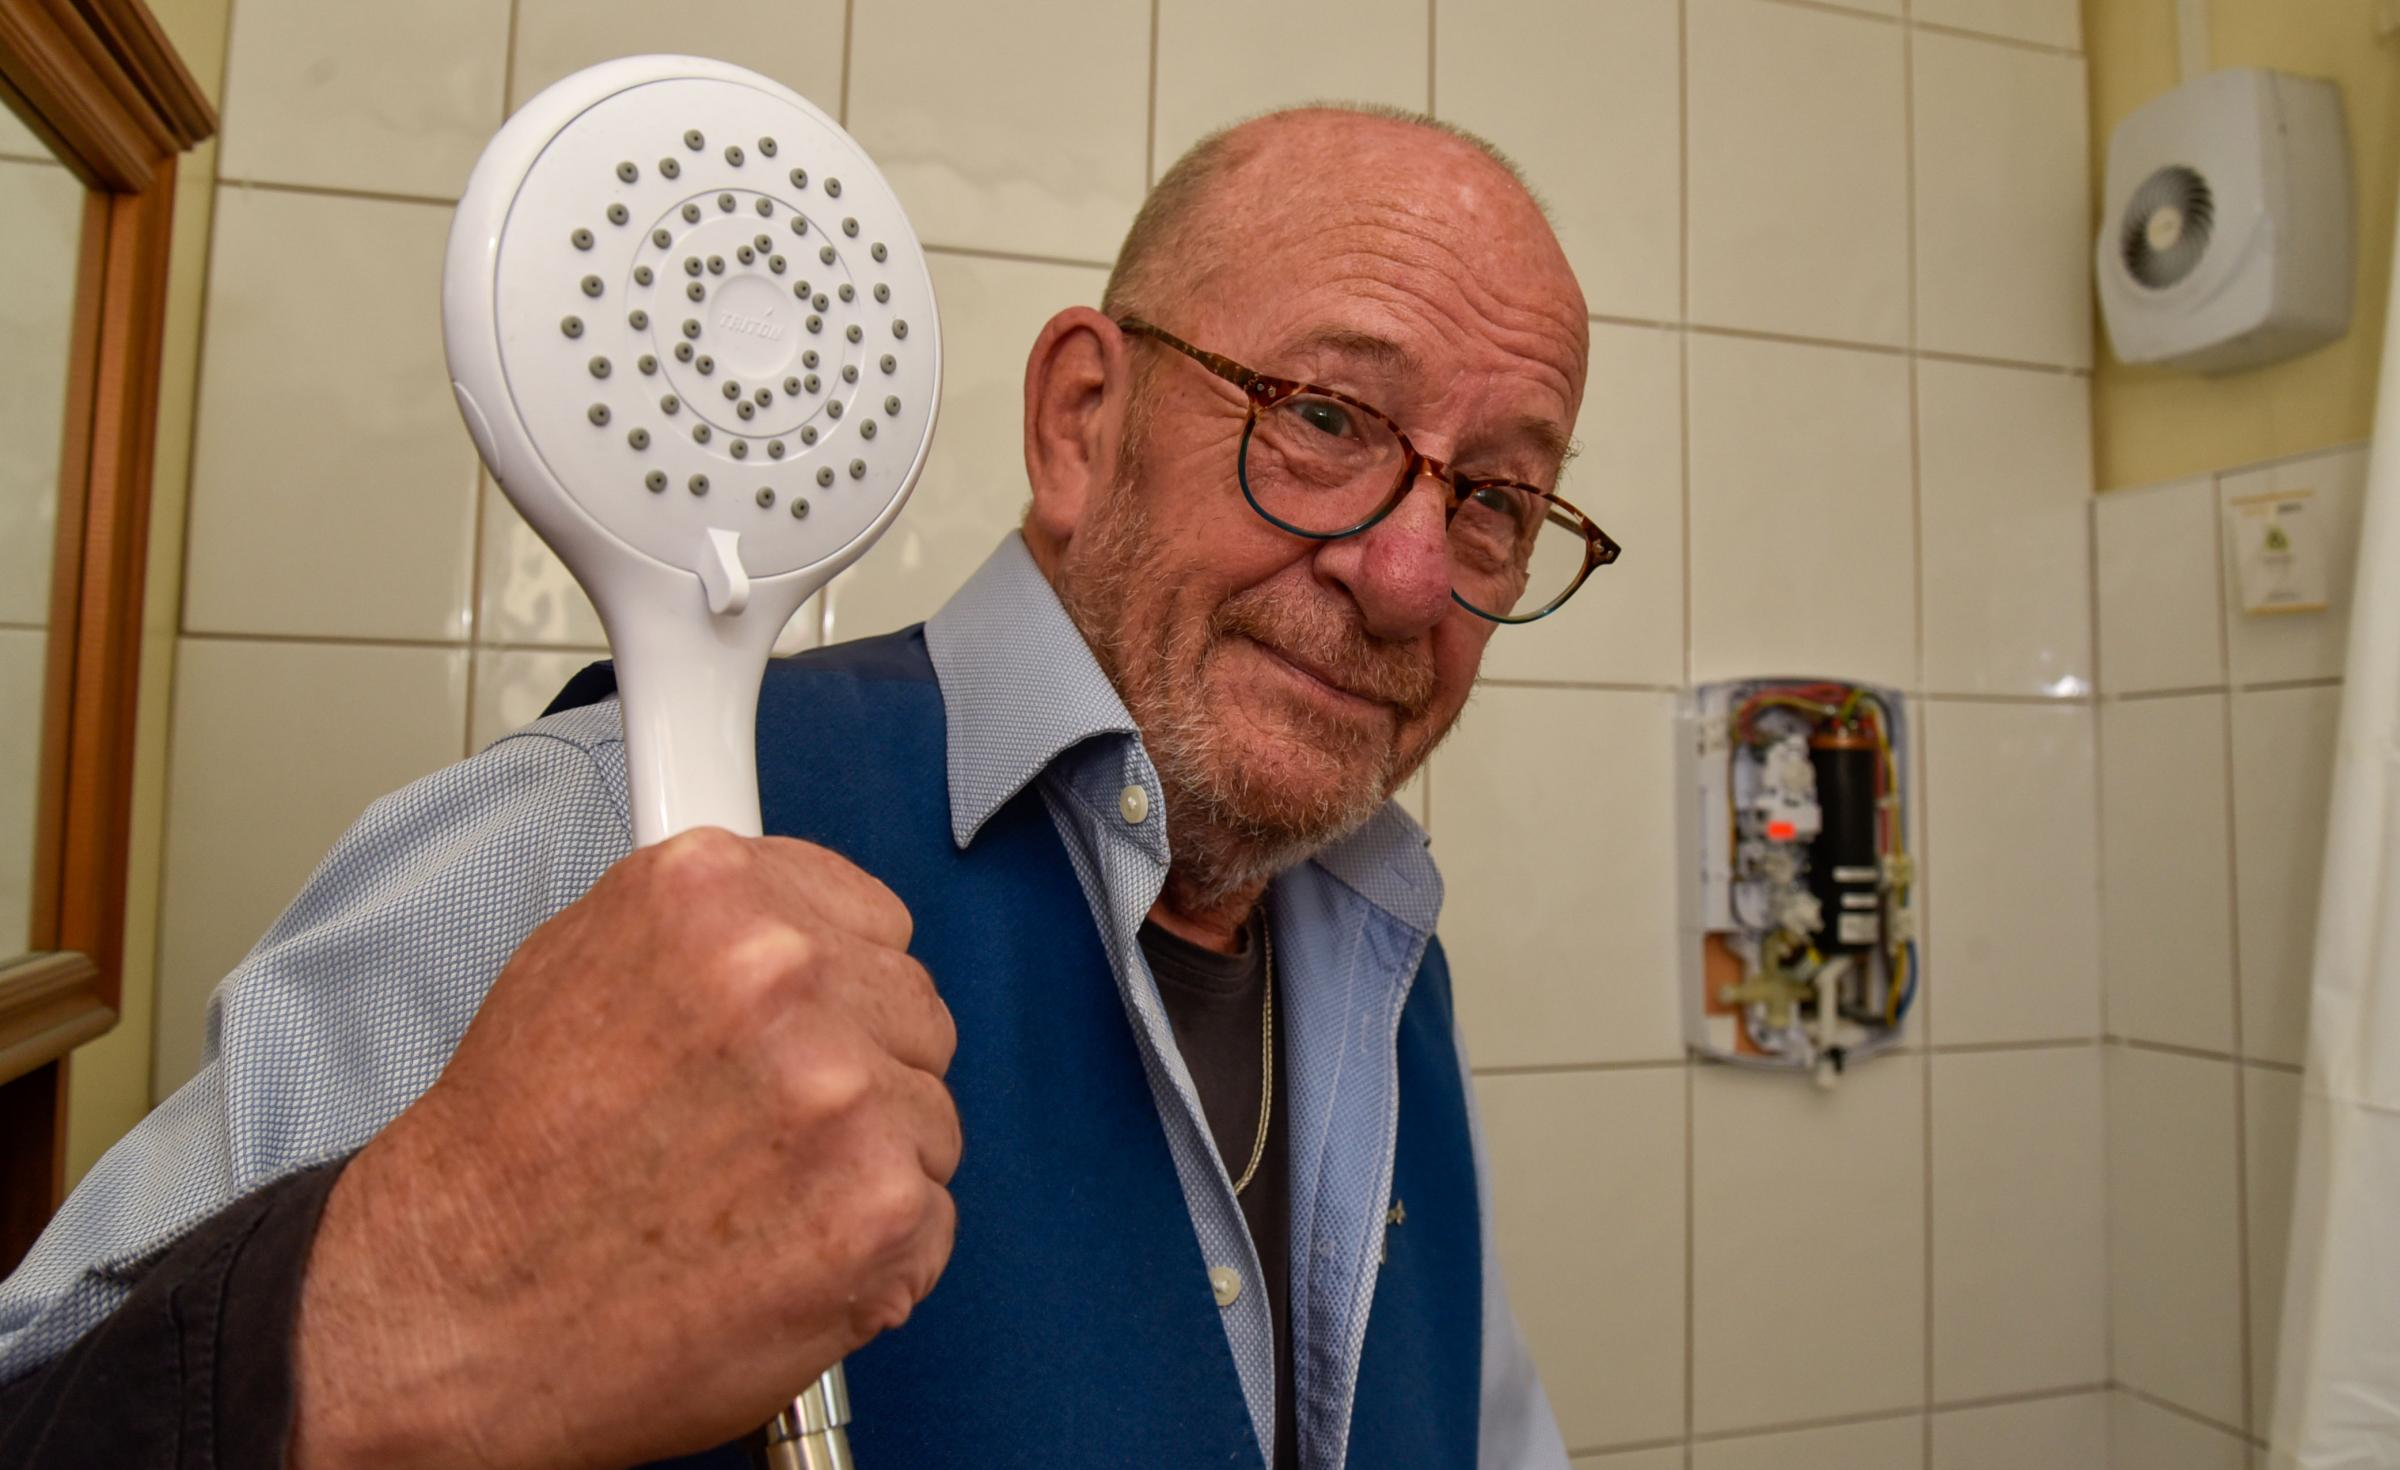 A long wait for a shower for Corsham disabled pensioner James McDonald. Picture: GLENN PHILLIPS